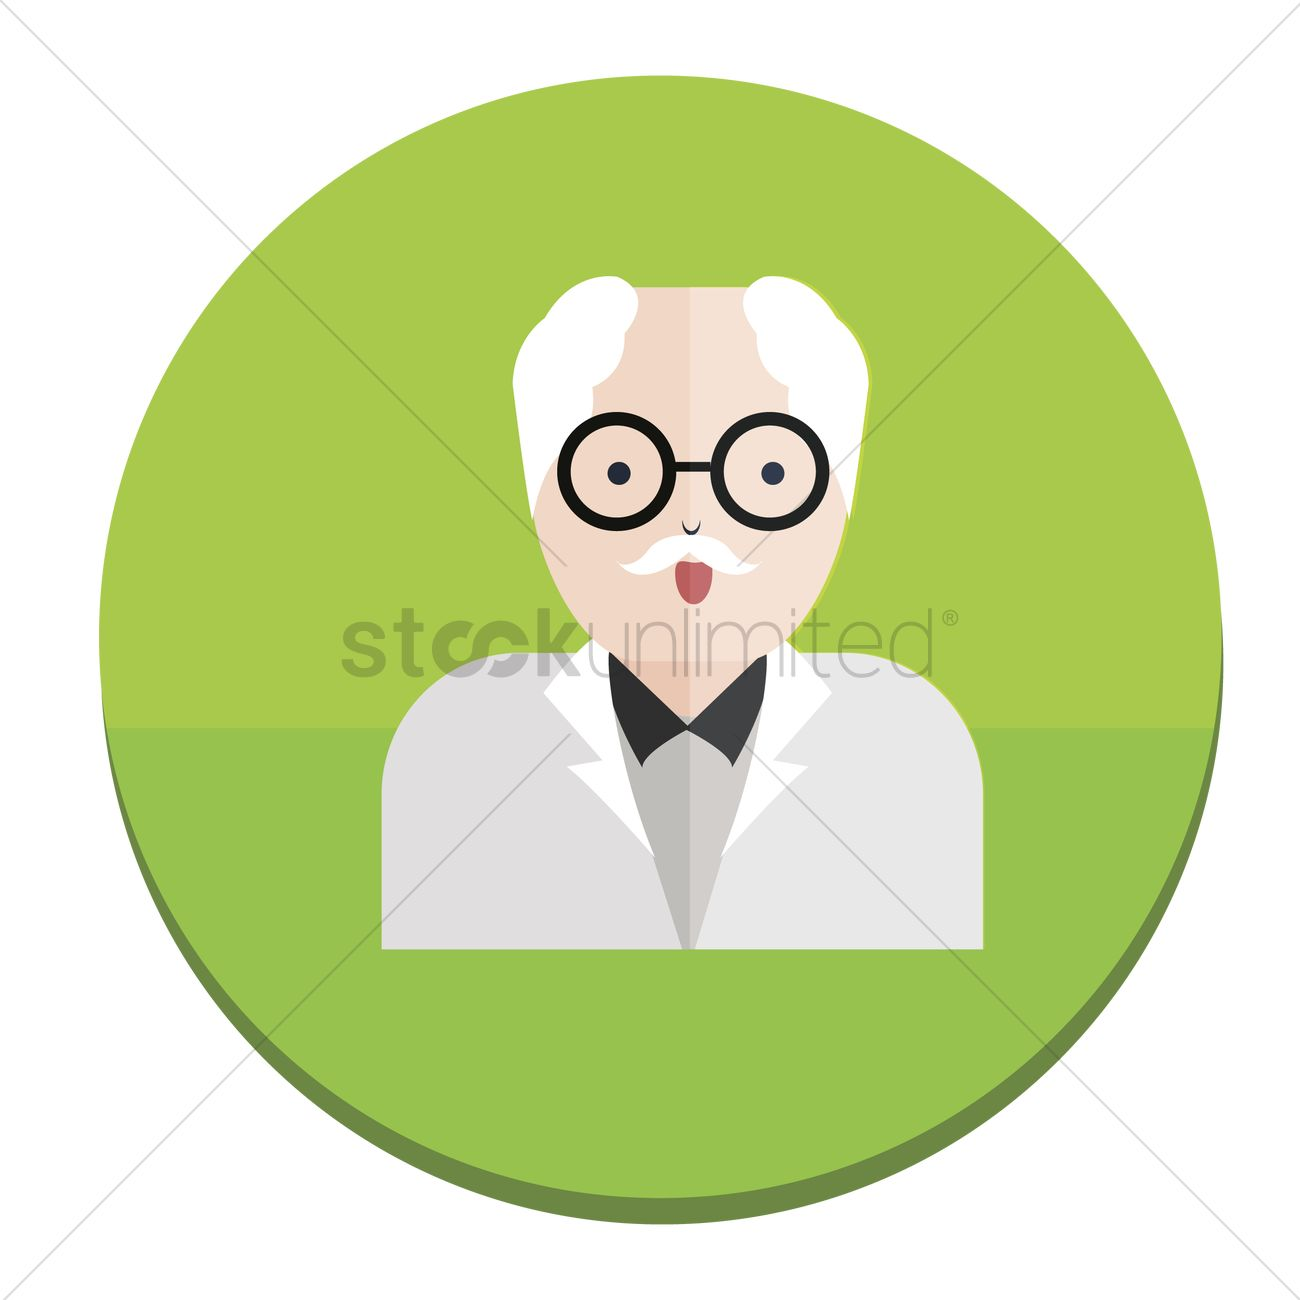 free illustration of a scientist vector image 1236373 stockunlimited stockunlimited